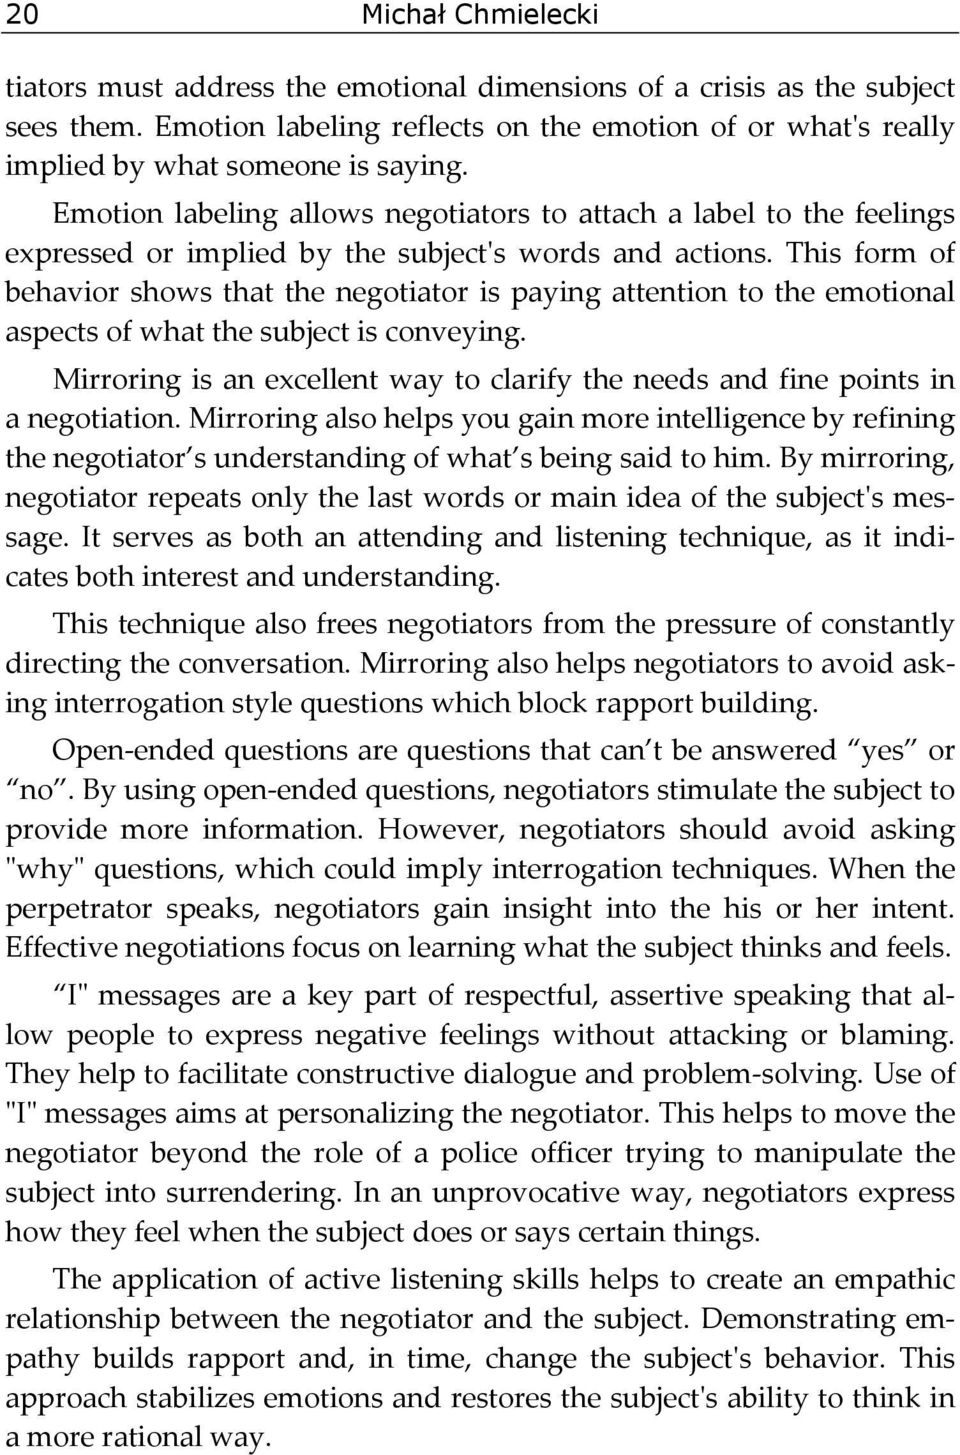 This form of behavior shows that the negotiator is paying attention to the emotional aspects of what the subject is conveying.